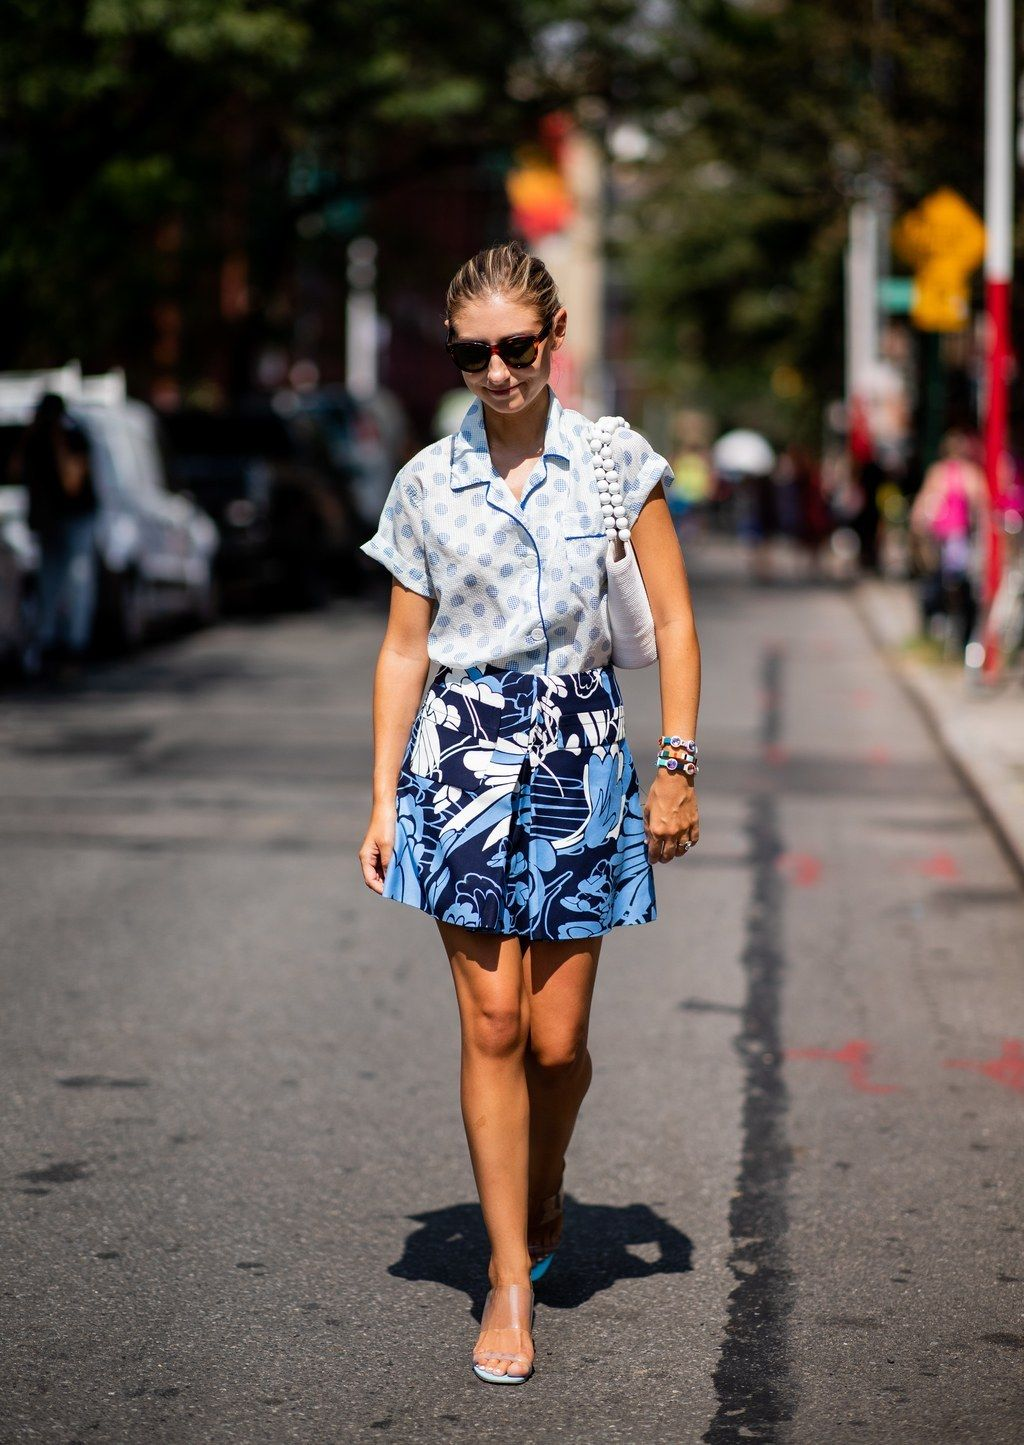 Discussion on this topic: Sad: Street Style Stars Scott Schuman and , sad-street-style-stars-scott-schuman-and/